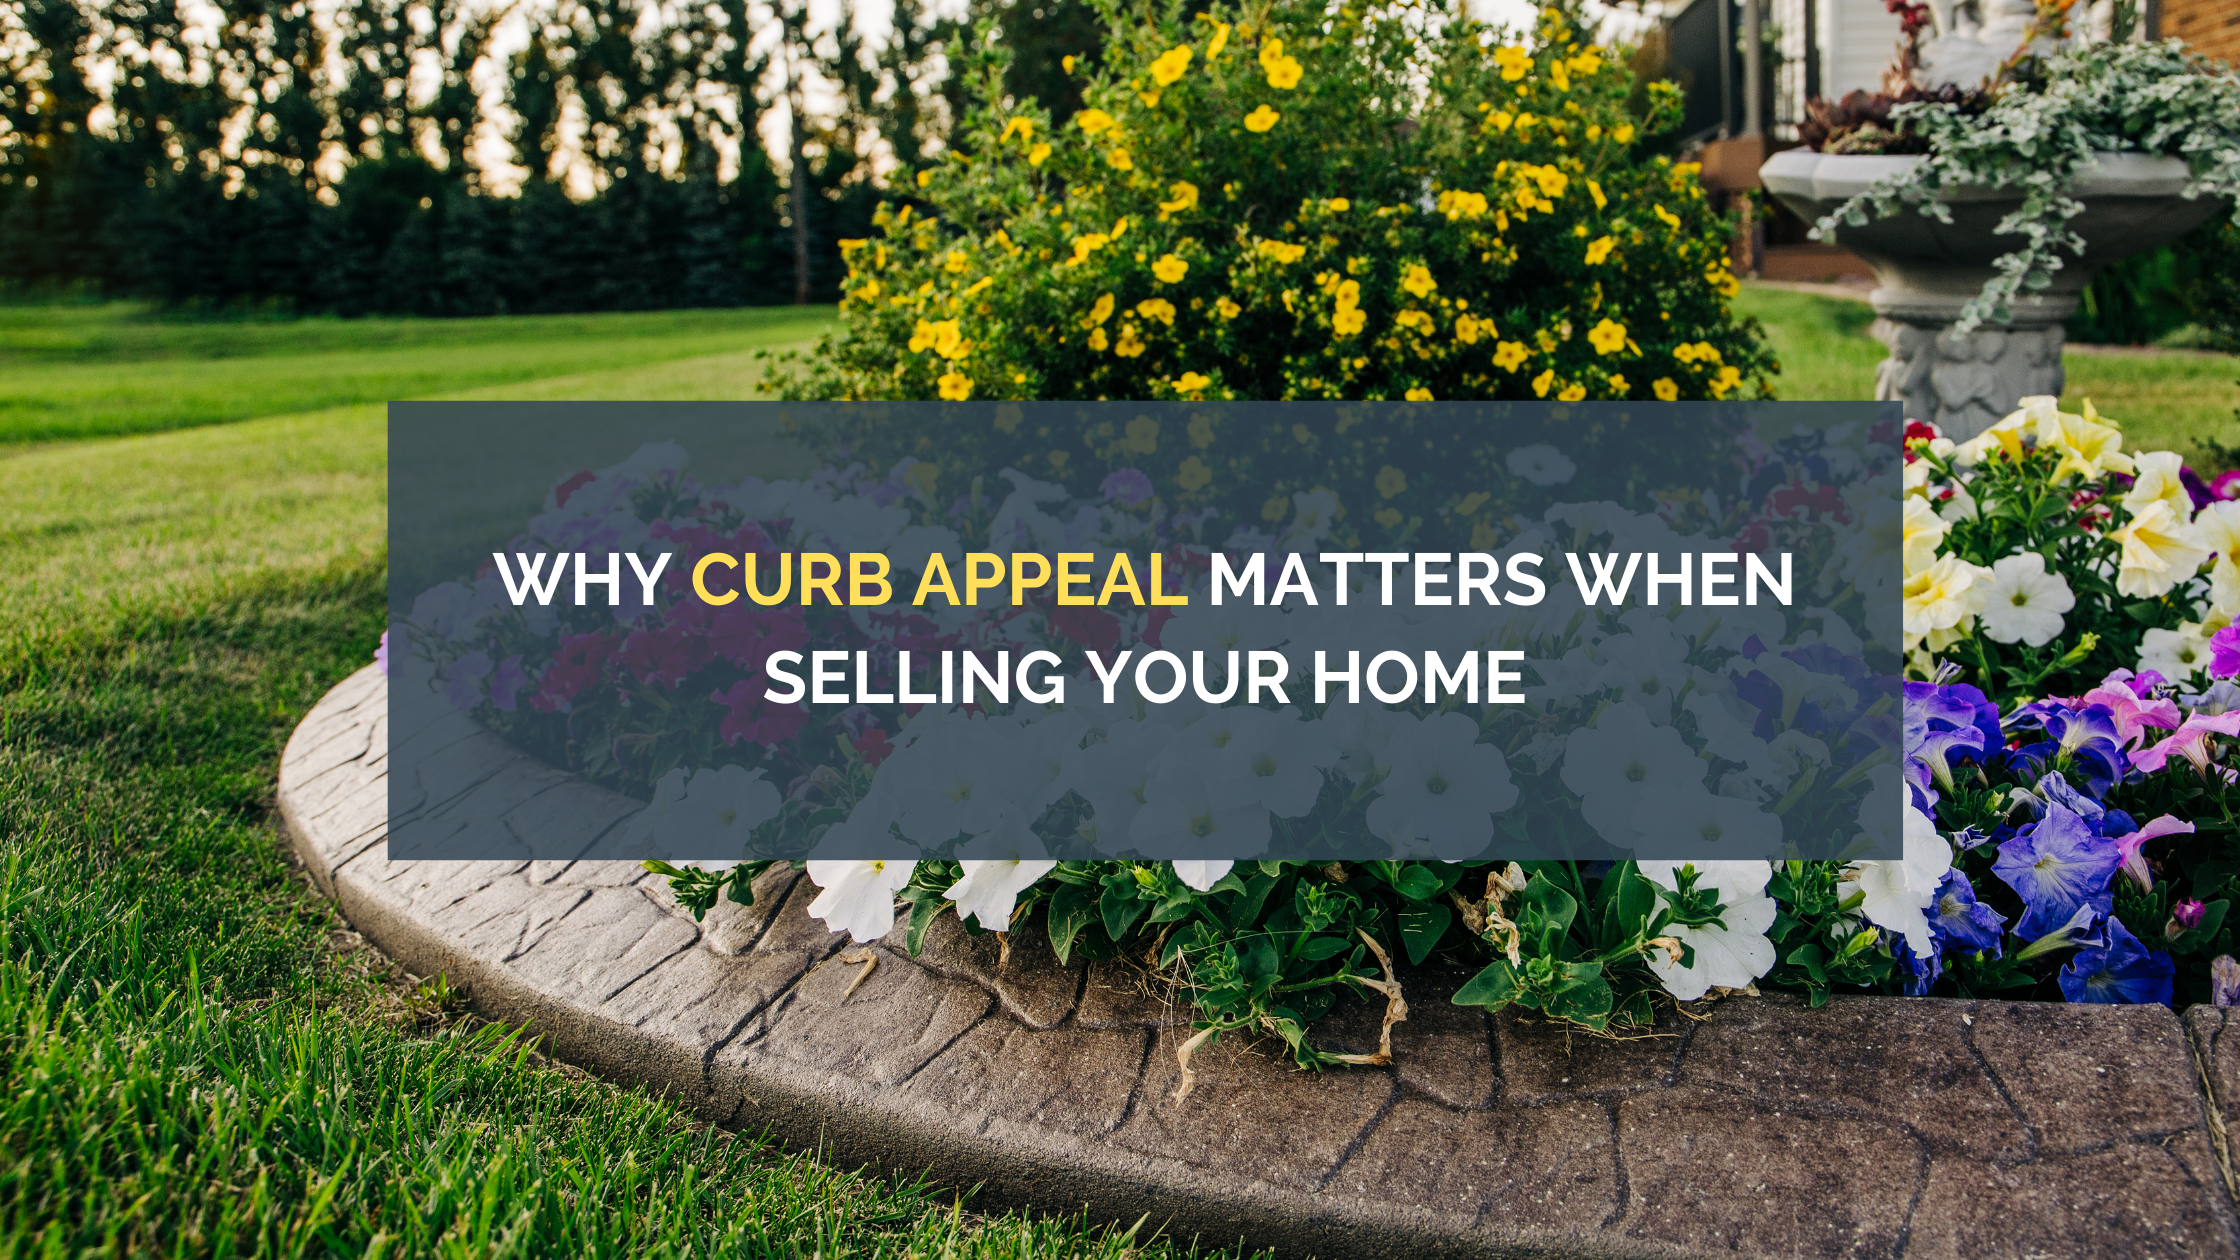 Why Curb Appeal Matters When Selling Your Home